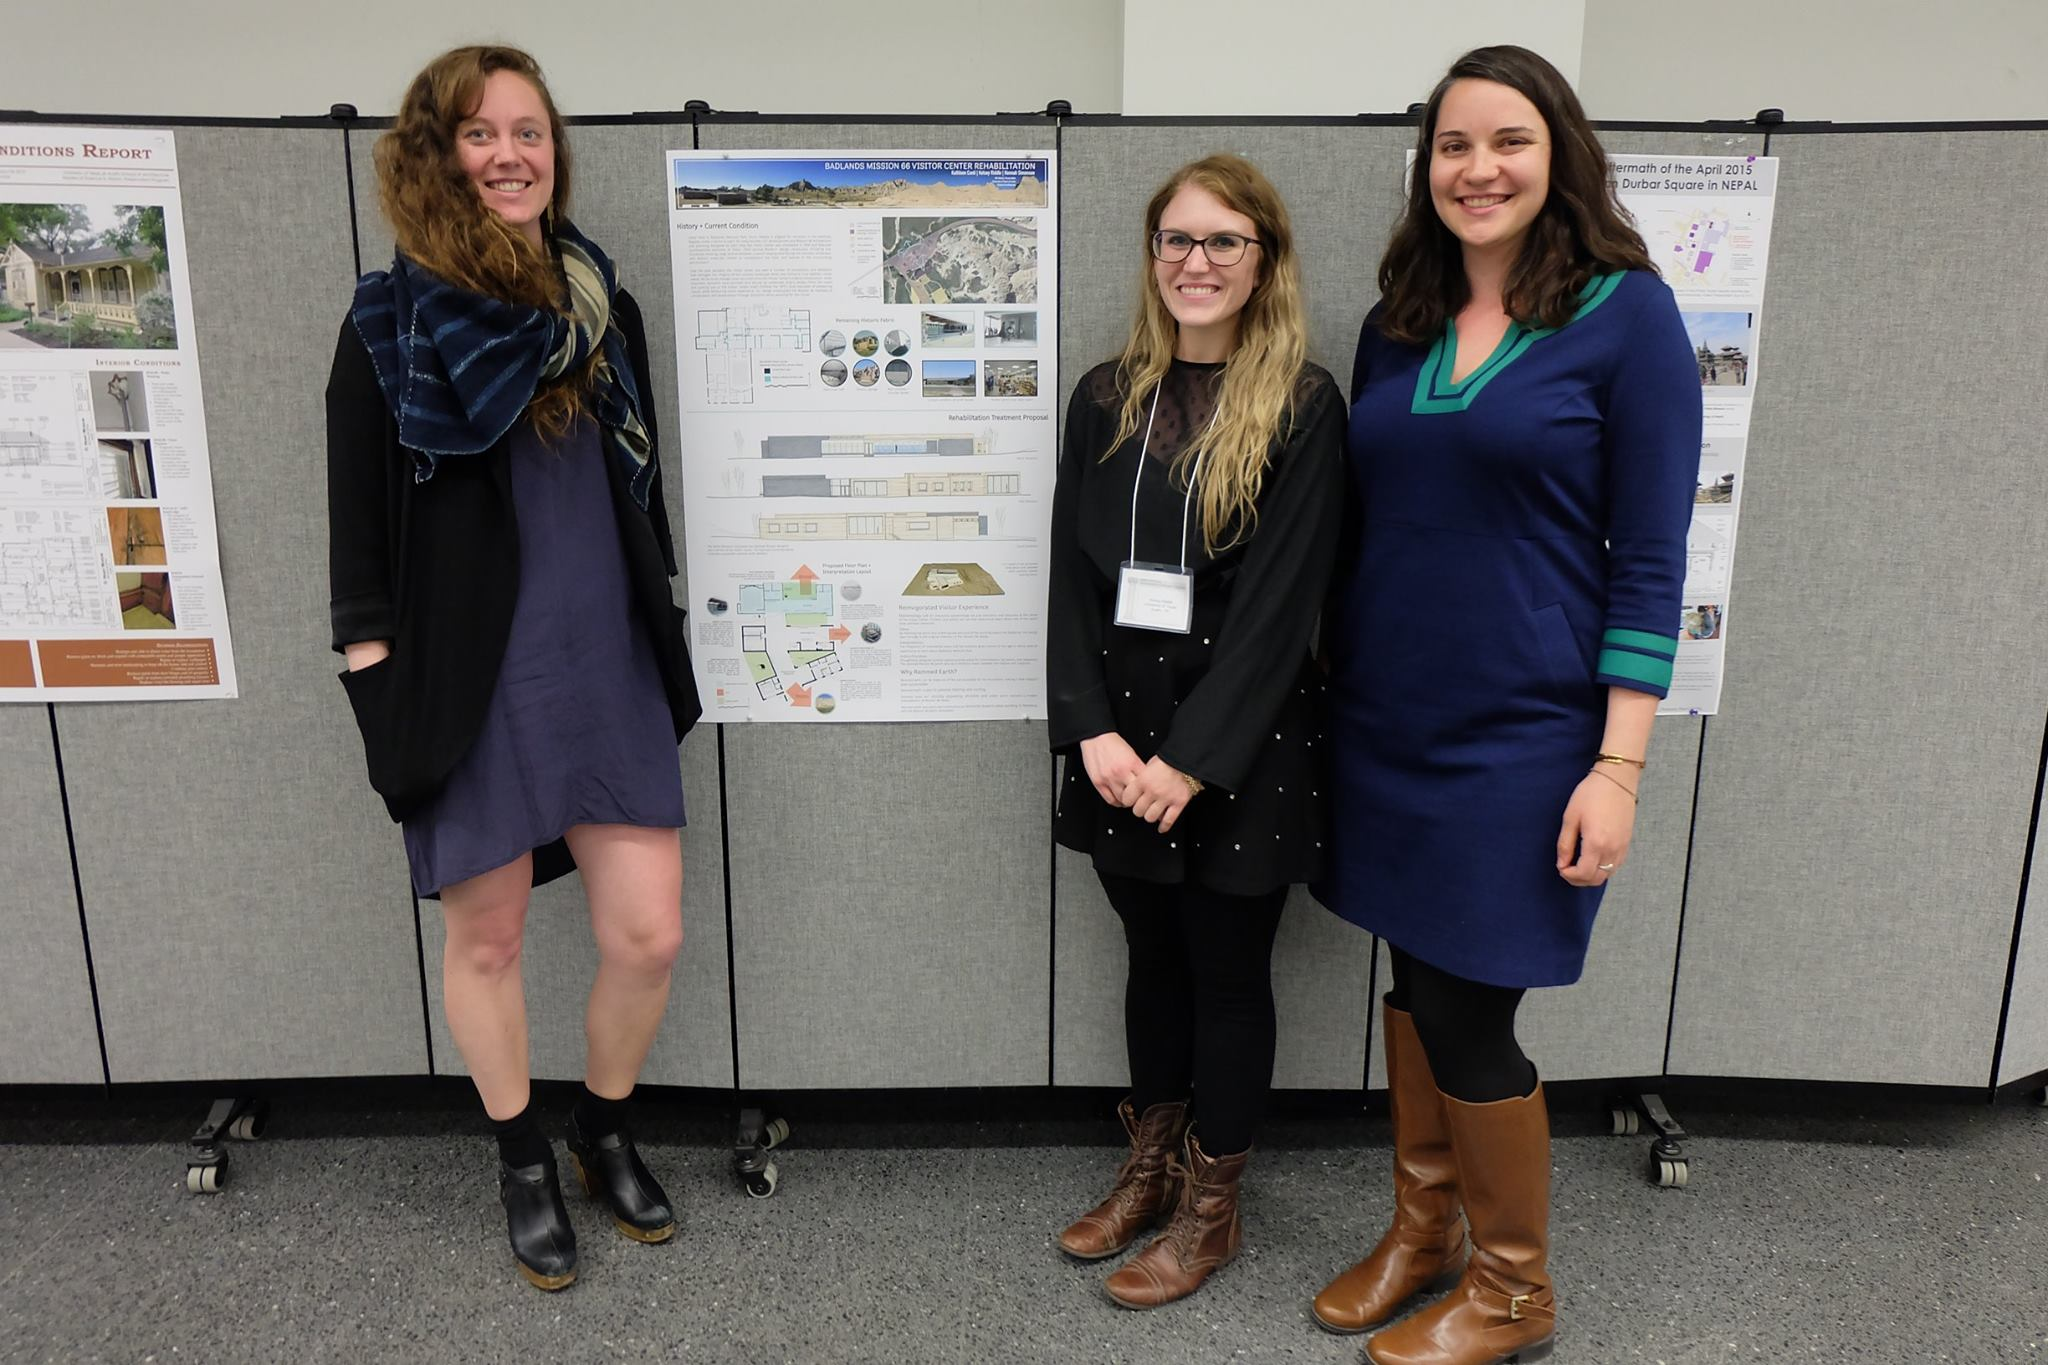 Hannah Simonson MSHP '17, Kelsey Riddle MSHP '17 and Kathleen Conti MSHP '17 present their Badlands Studio project at the Center for Heritage Conservation Conference in College Station, TX (Feb. 2016)